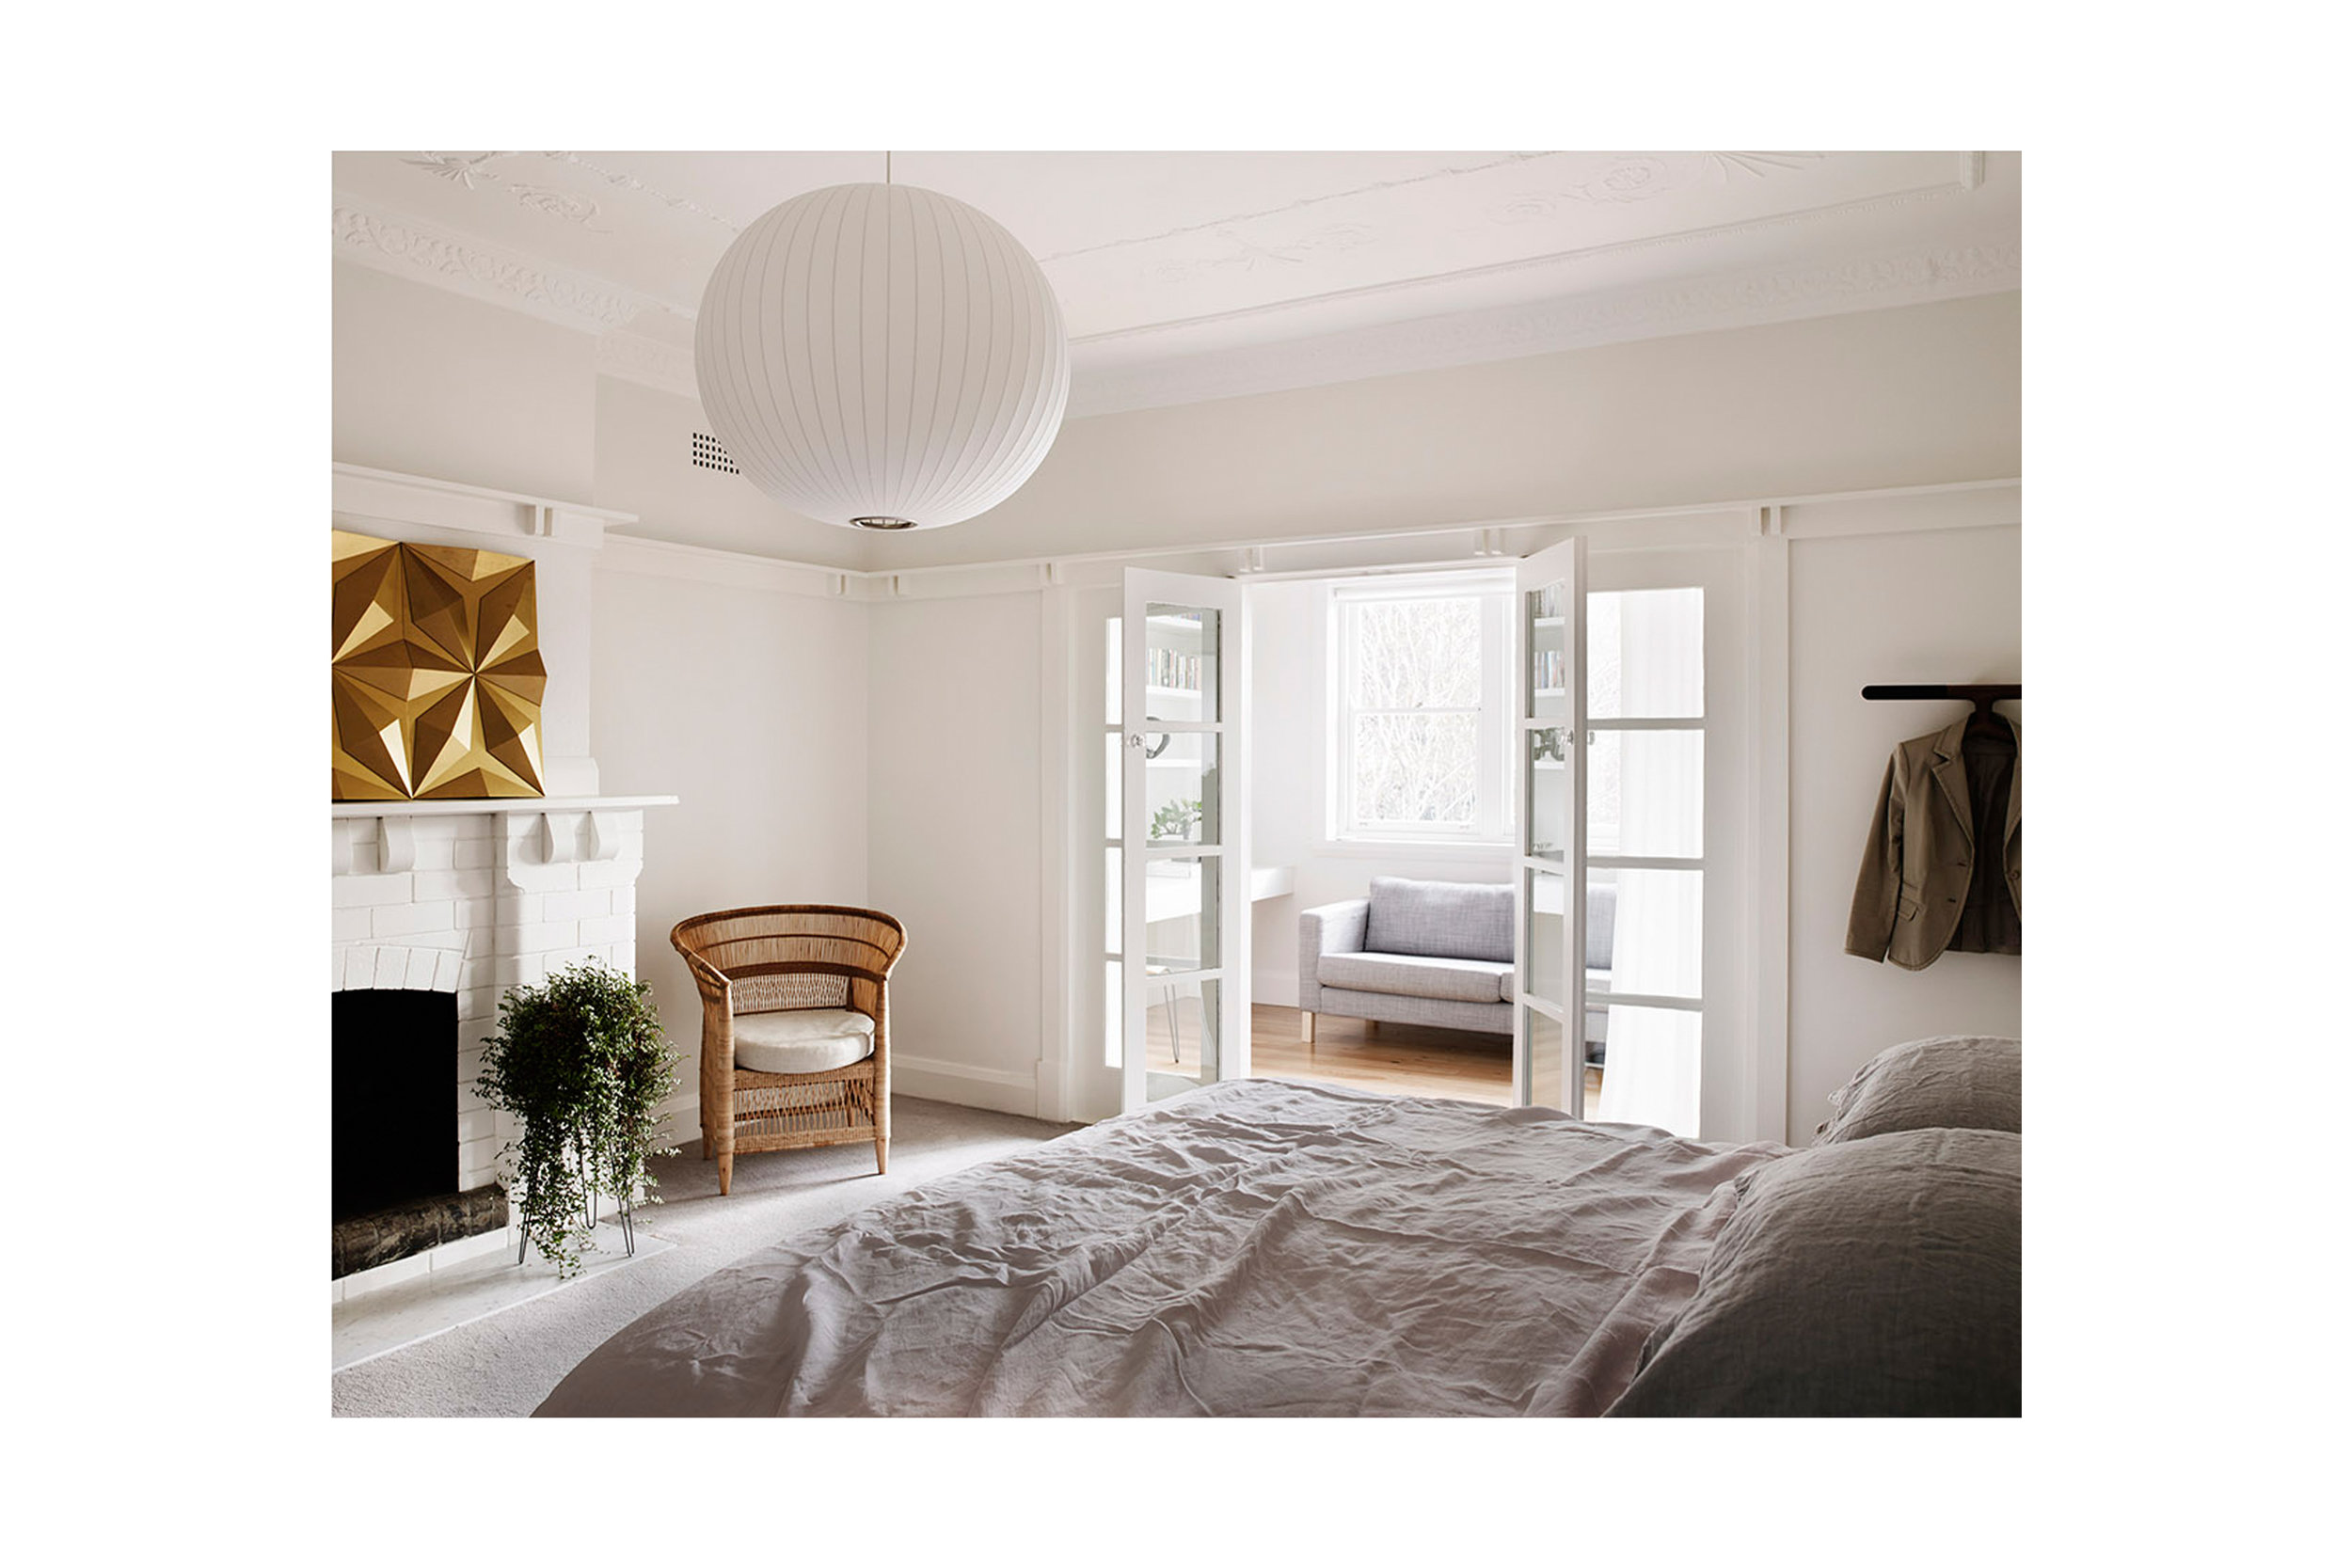 Website | File | Terence Yong Architecture | Coogee House : 2 in 1 | Alteration | A combined Main Bed-Study-Ensuite room that redefines a typical bedroom design | Looking to the West (Study room) from the Main Bedroom.jpg